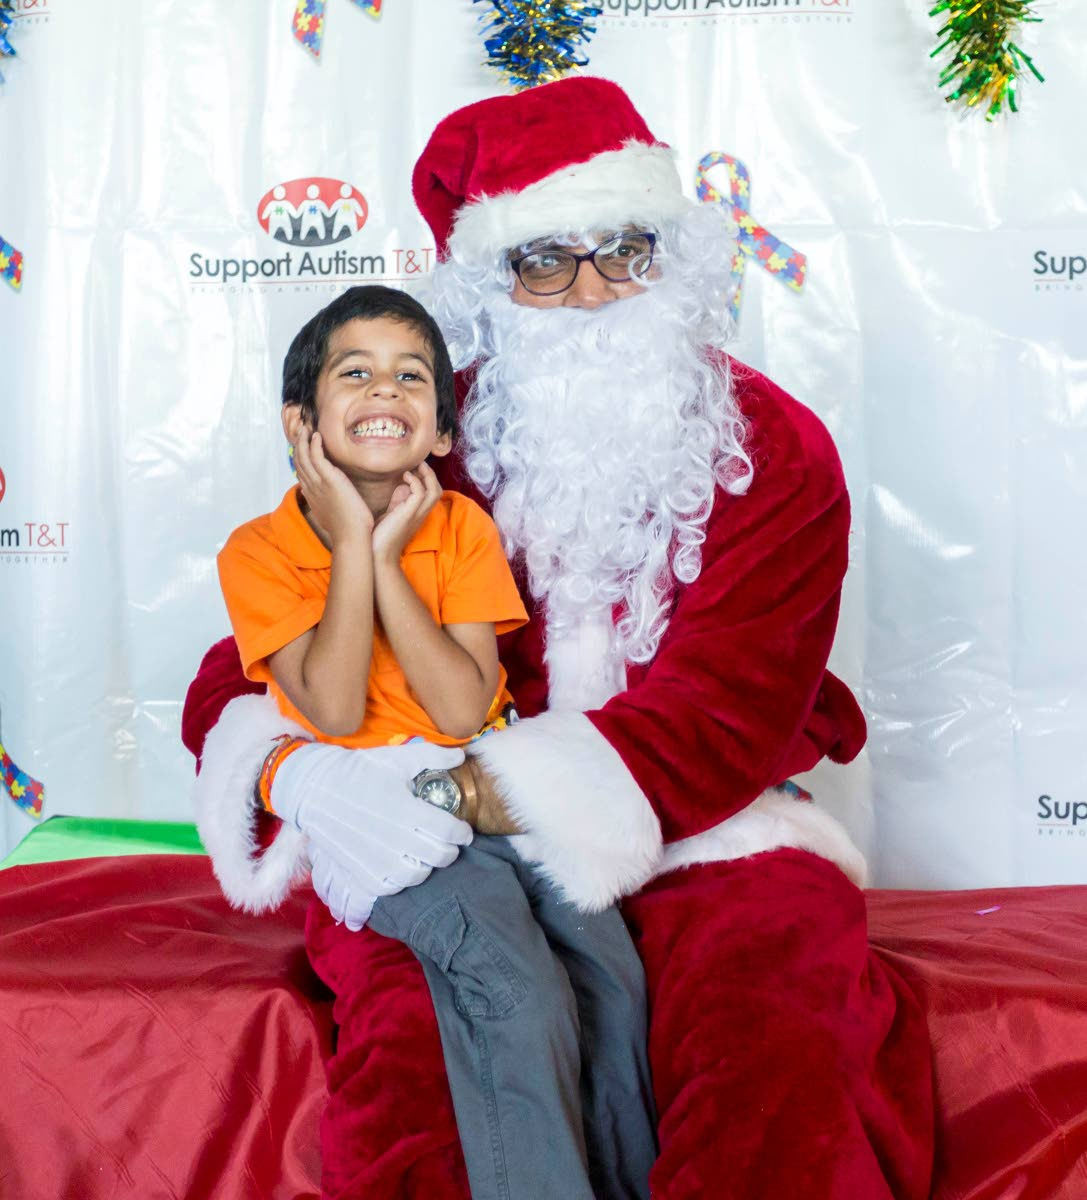 So excited to be with Santa at Support Autism T&T's Christmas party.